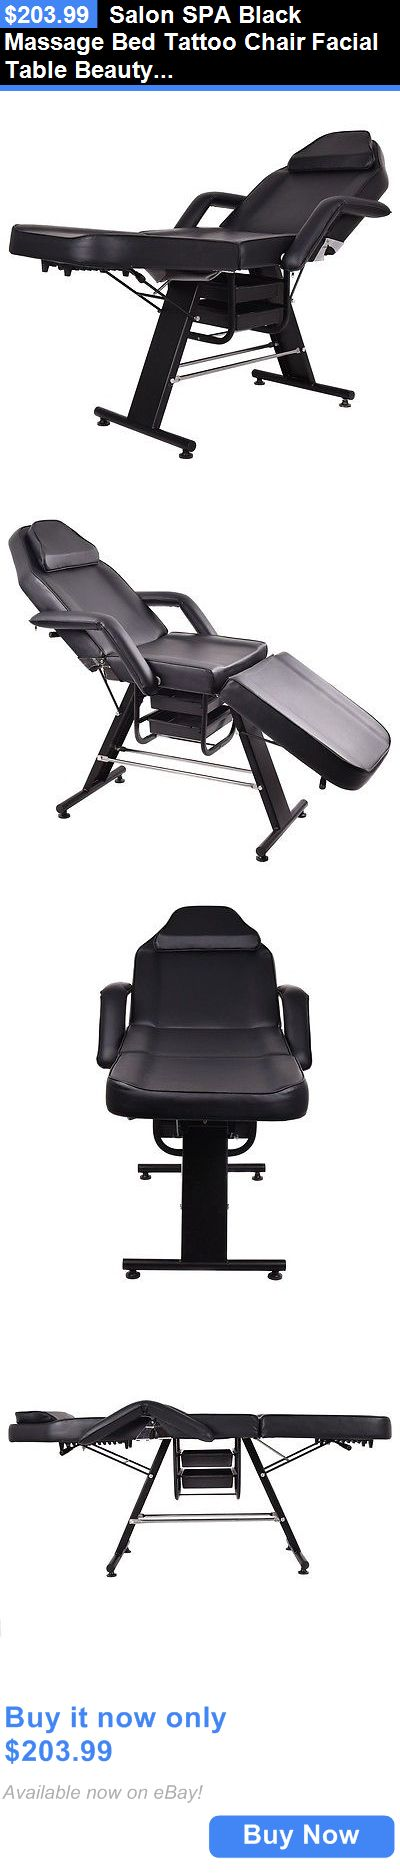 Massage Tables and Chairs: Salon Spa Black Massage Bed Tattoo Chair Facial Table Beauty Basket Adjustable BUY IT NOW ONLY: $203.99